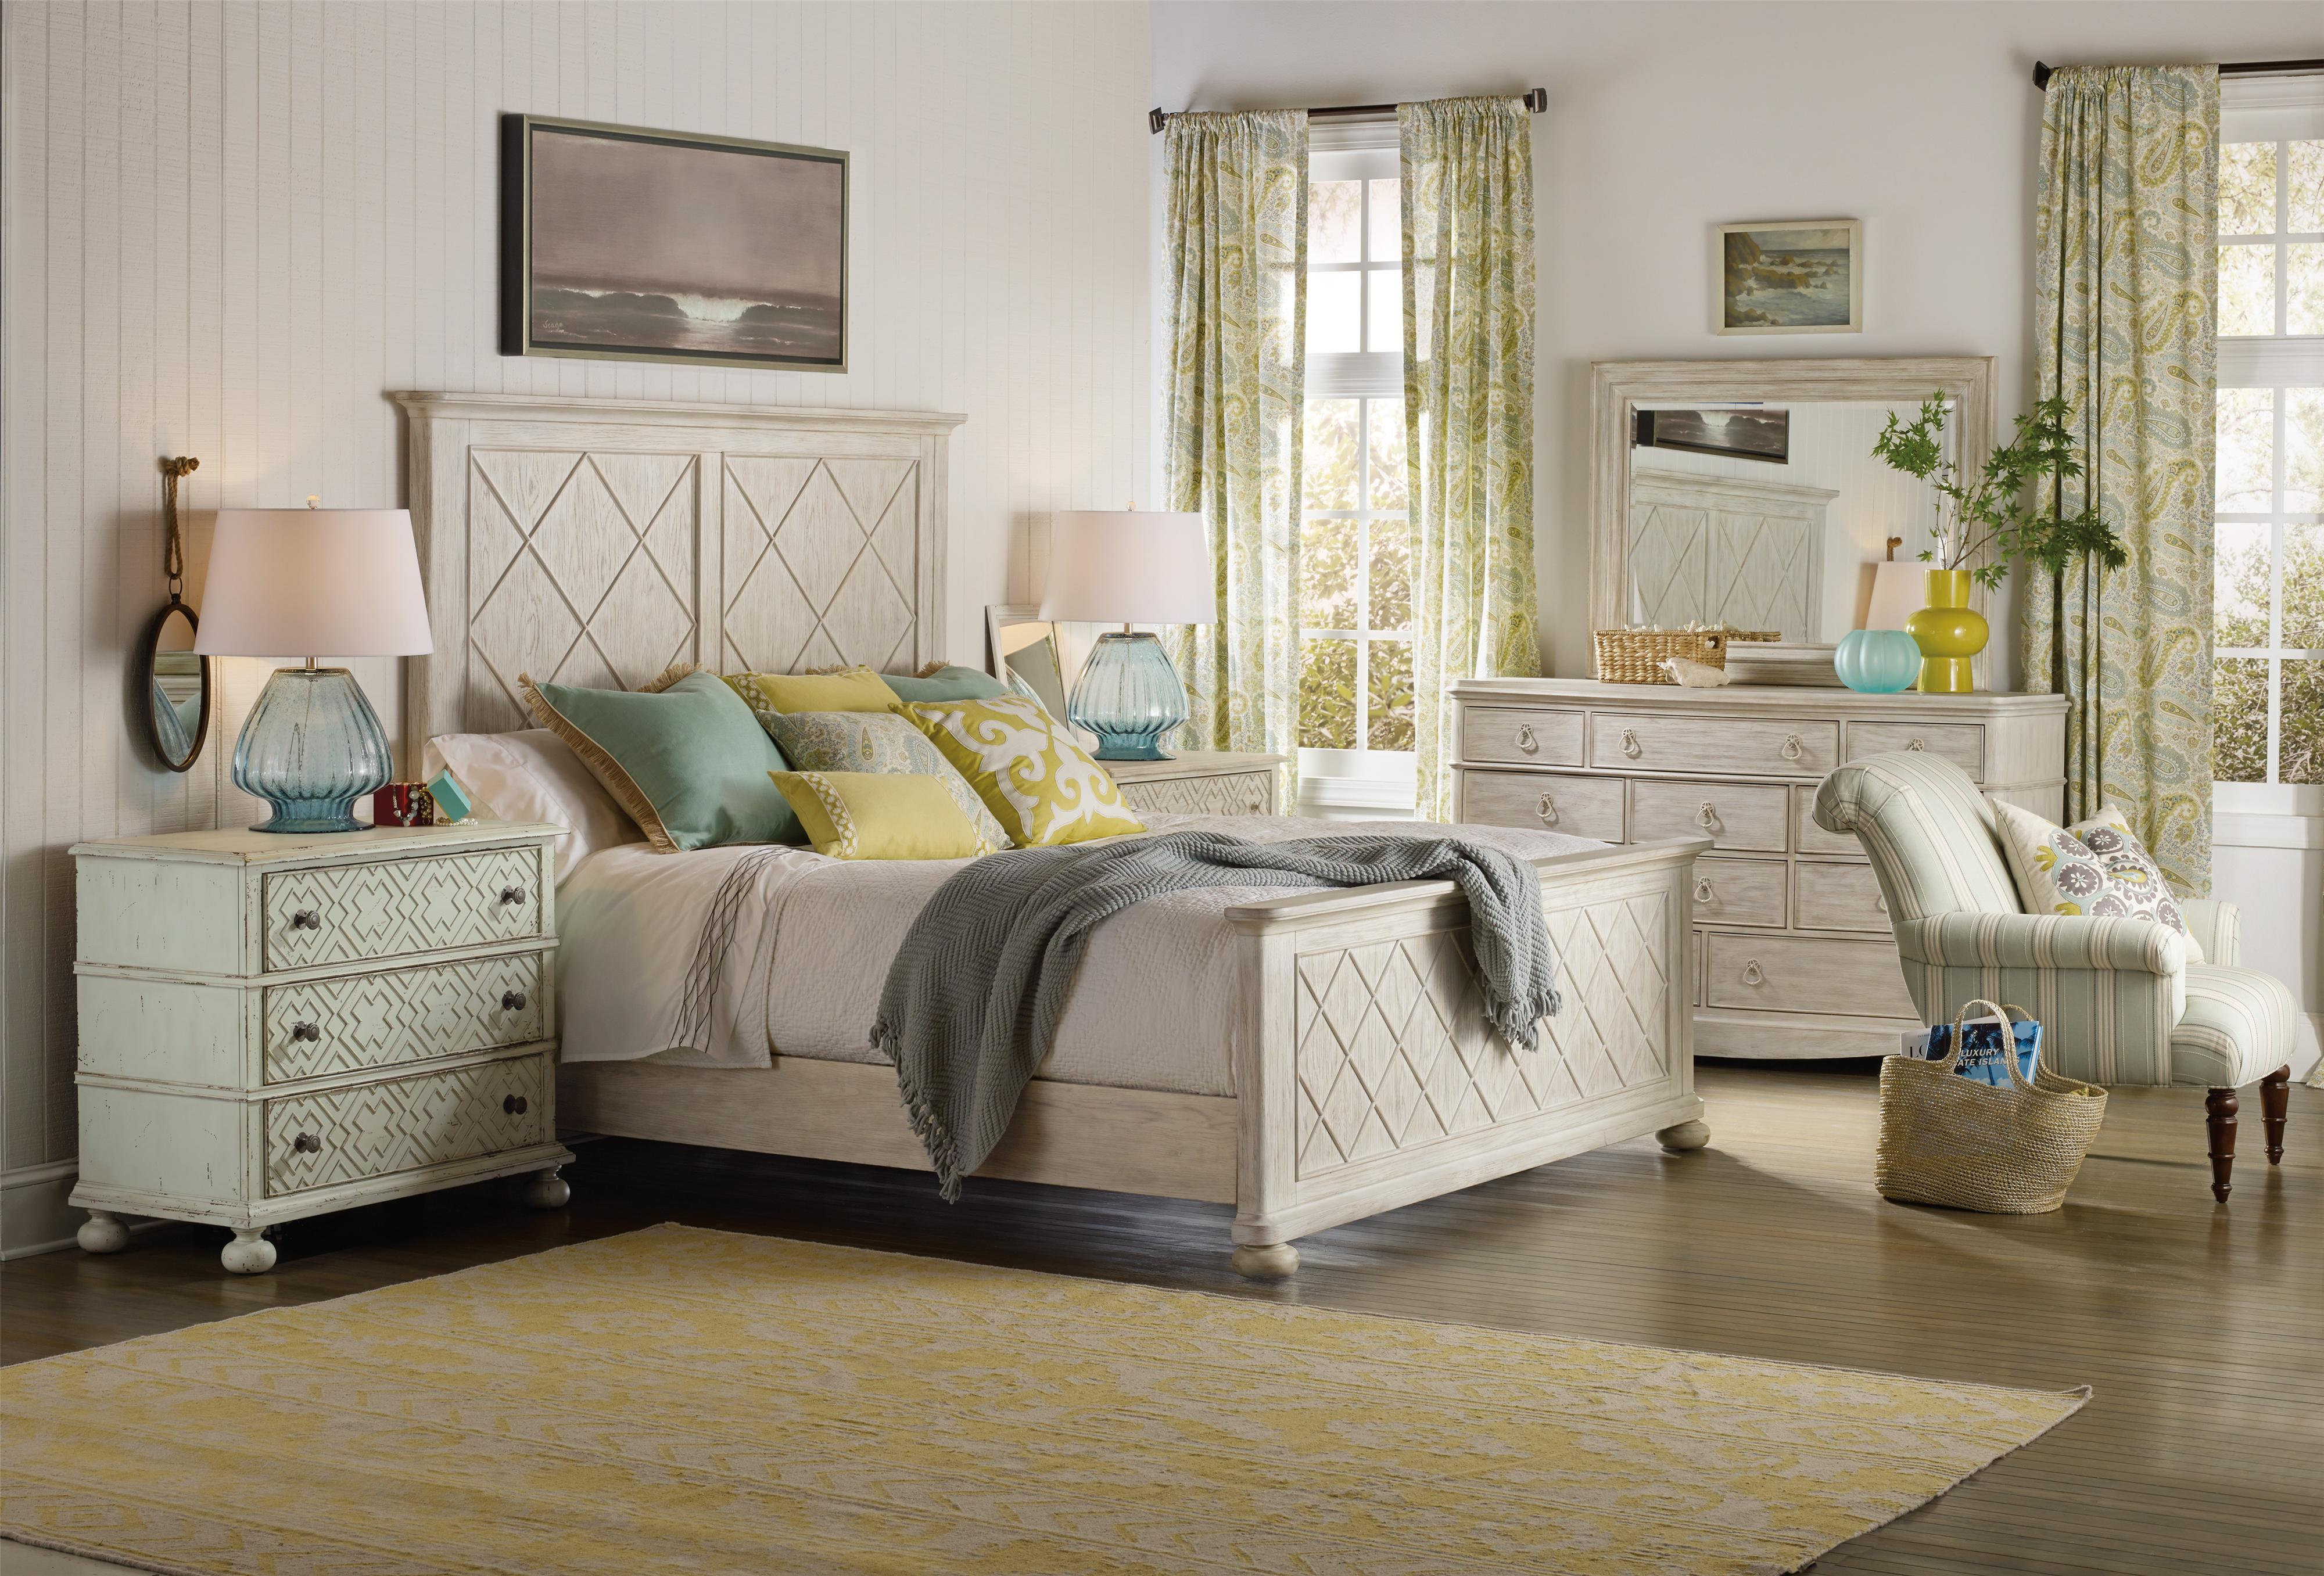 Hooker Furniture Sunset Point Queen Bedroom Group - Item Number: 5325 Q Bedroom Group 1